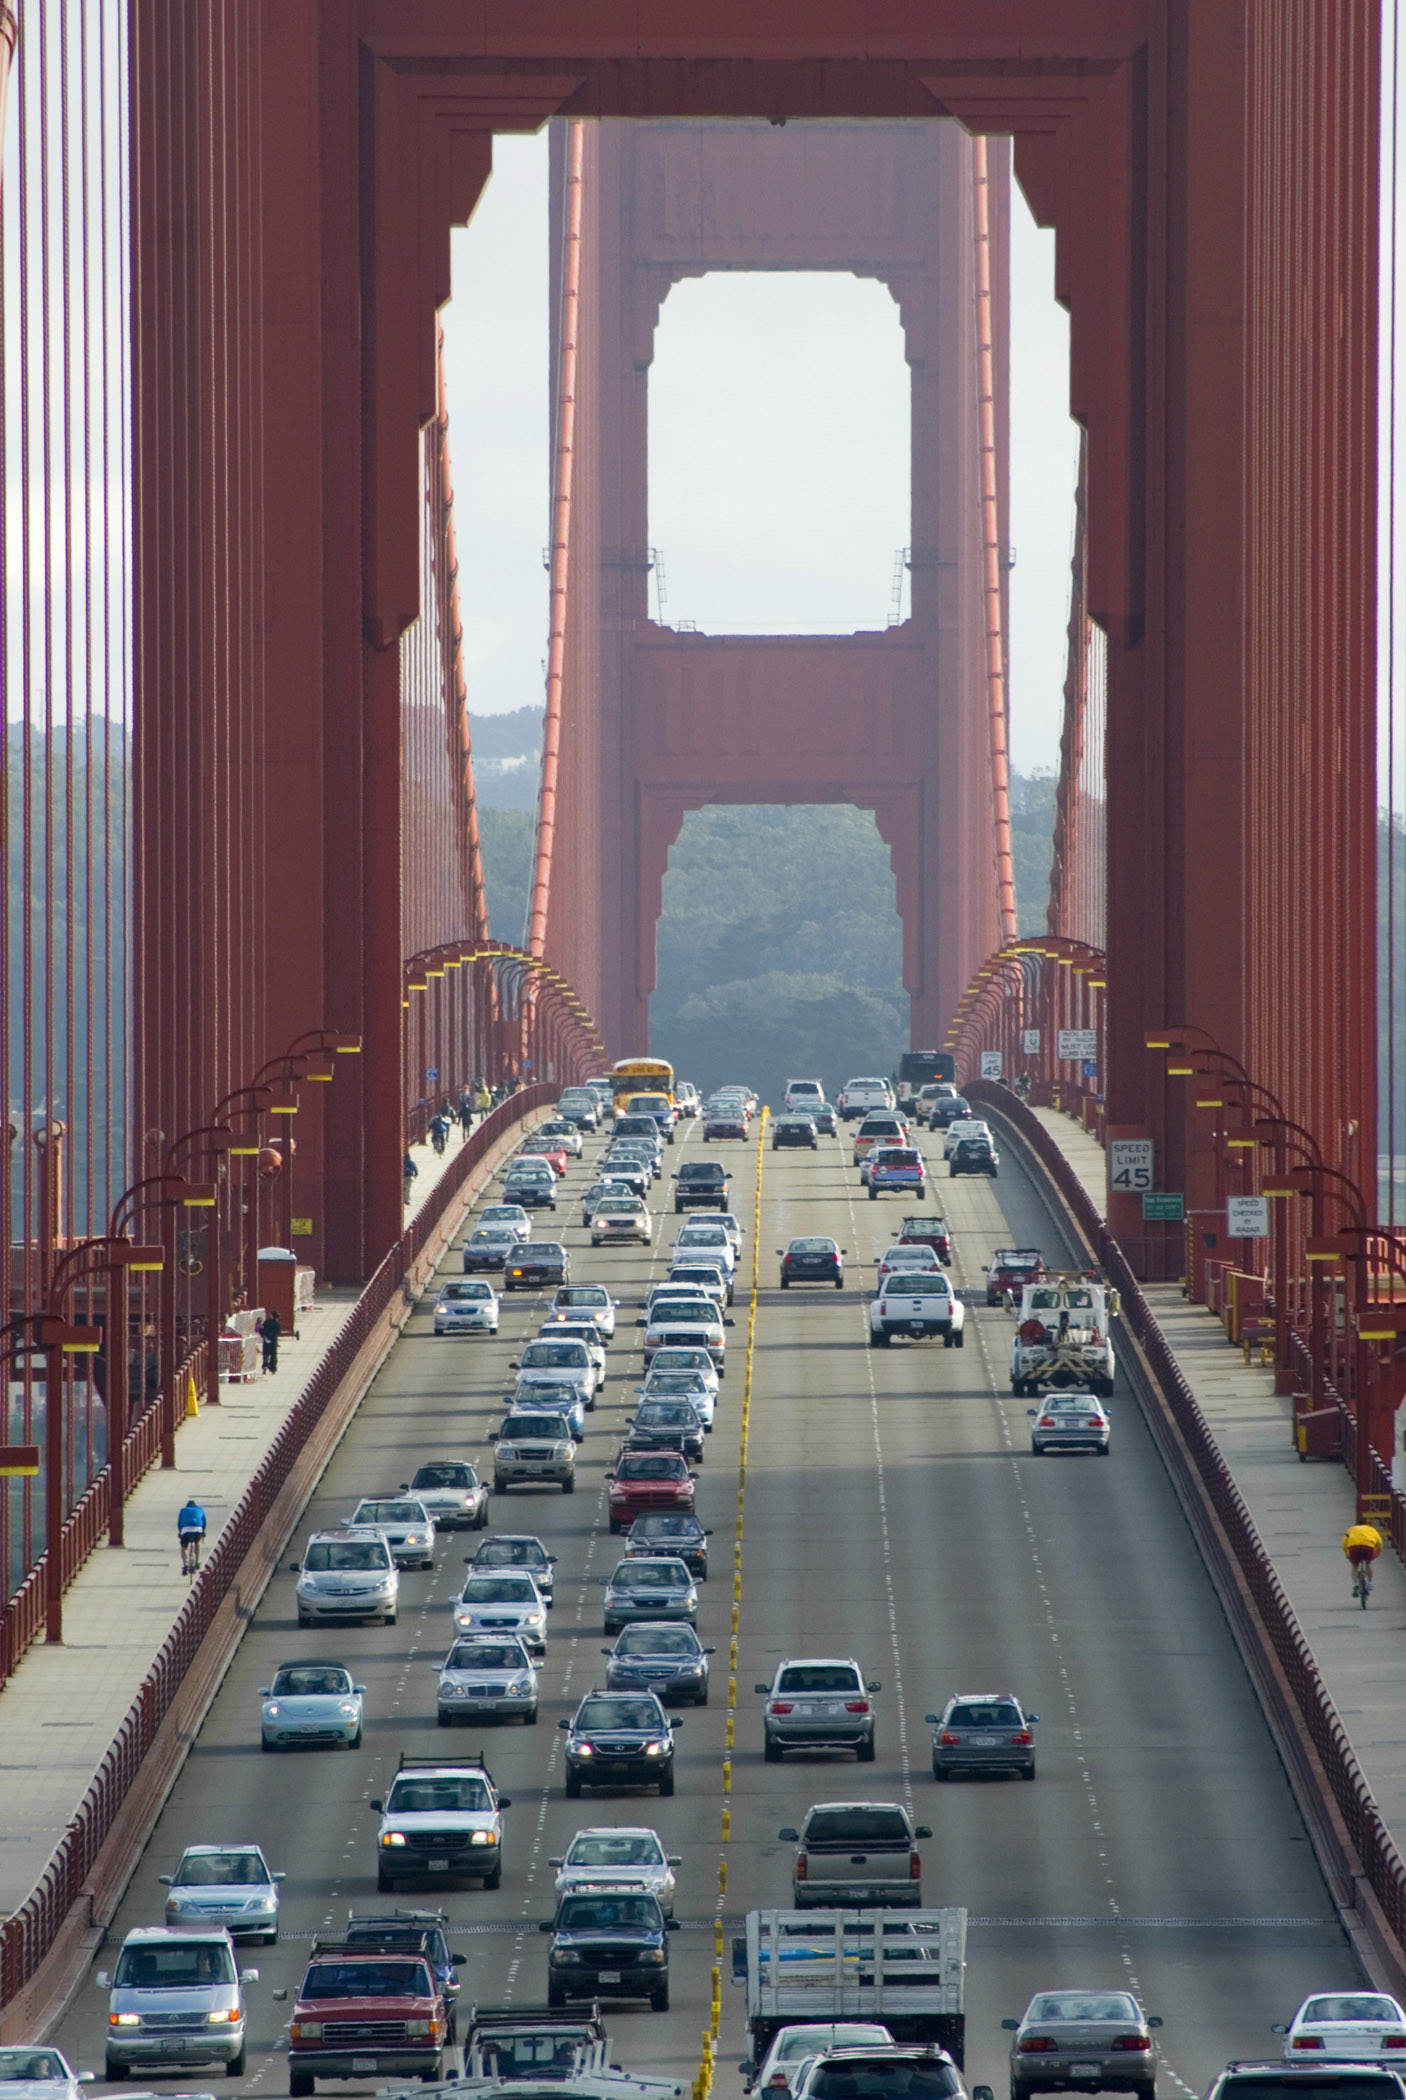 View of heavy traffic on the Golden Gate Bridge between the support towers for the suspension cables with commuters crossing the San Francisco Bay